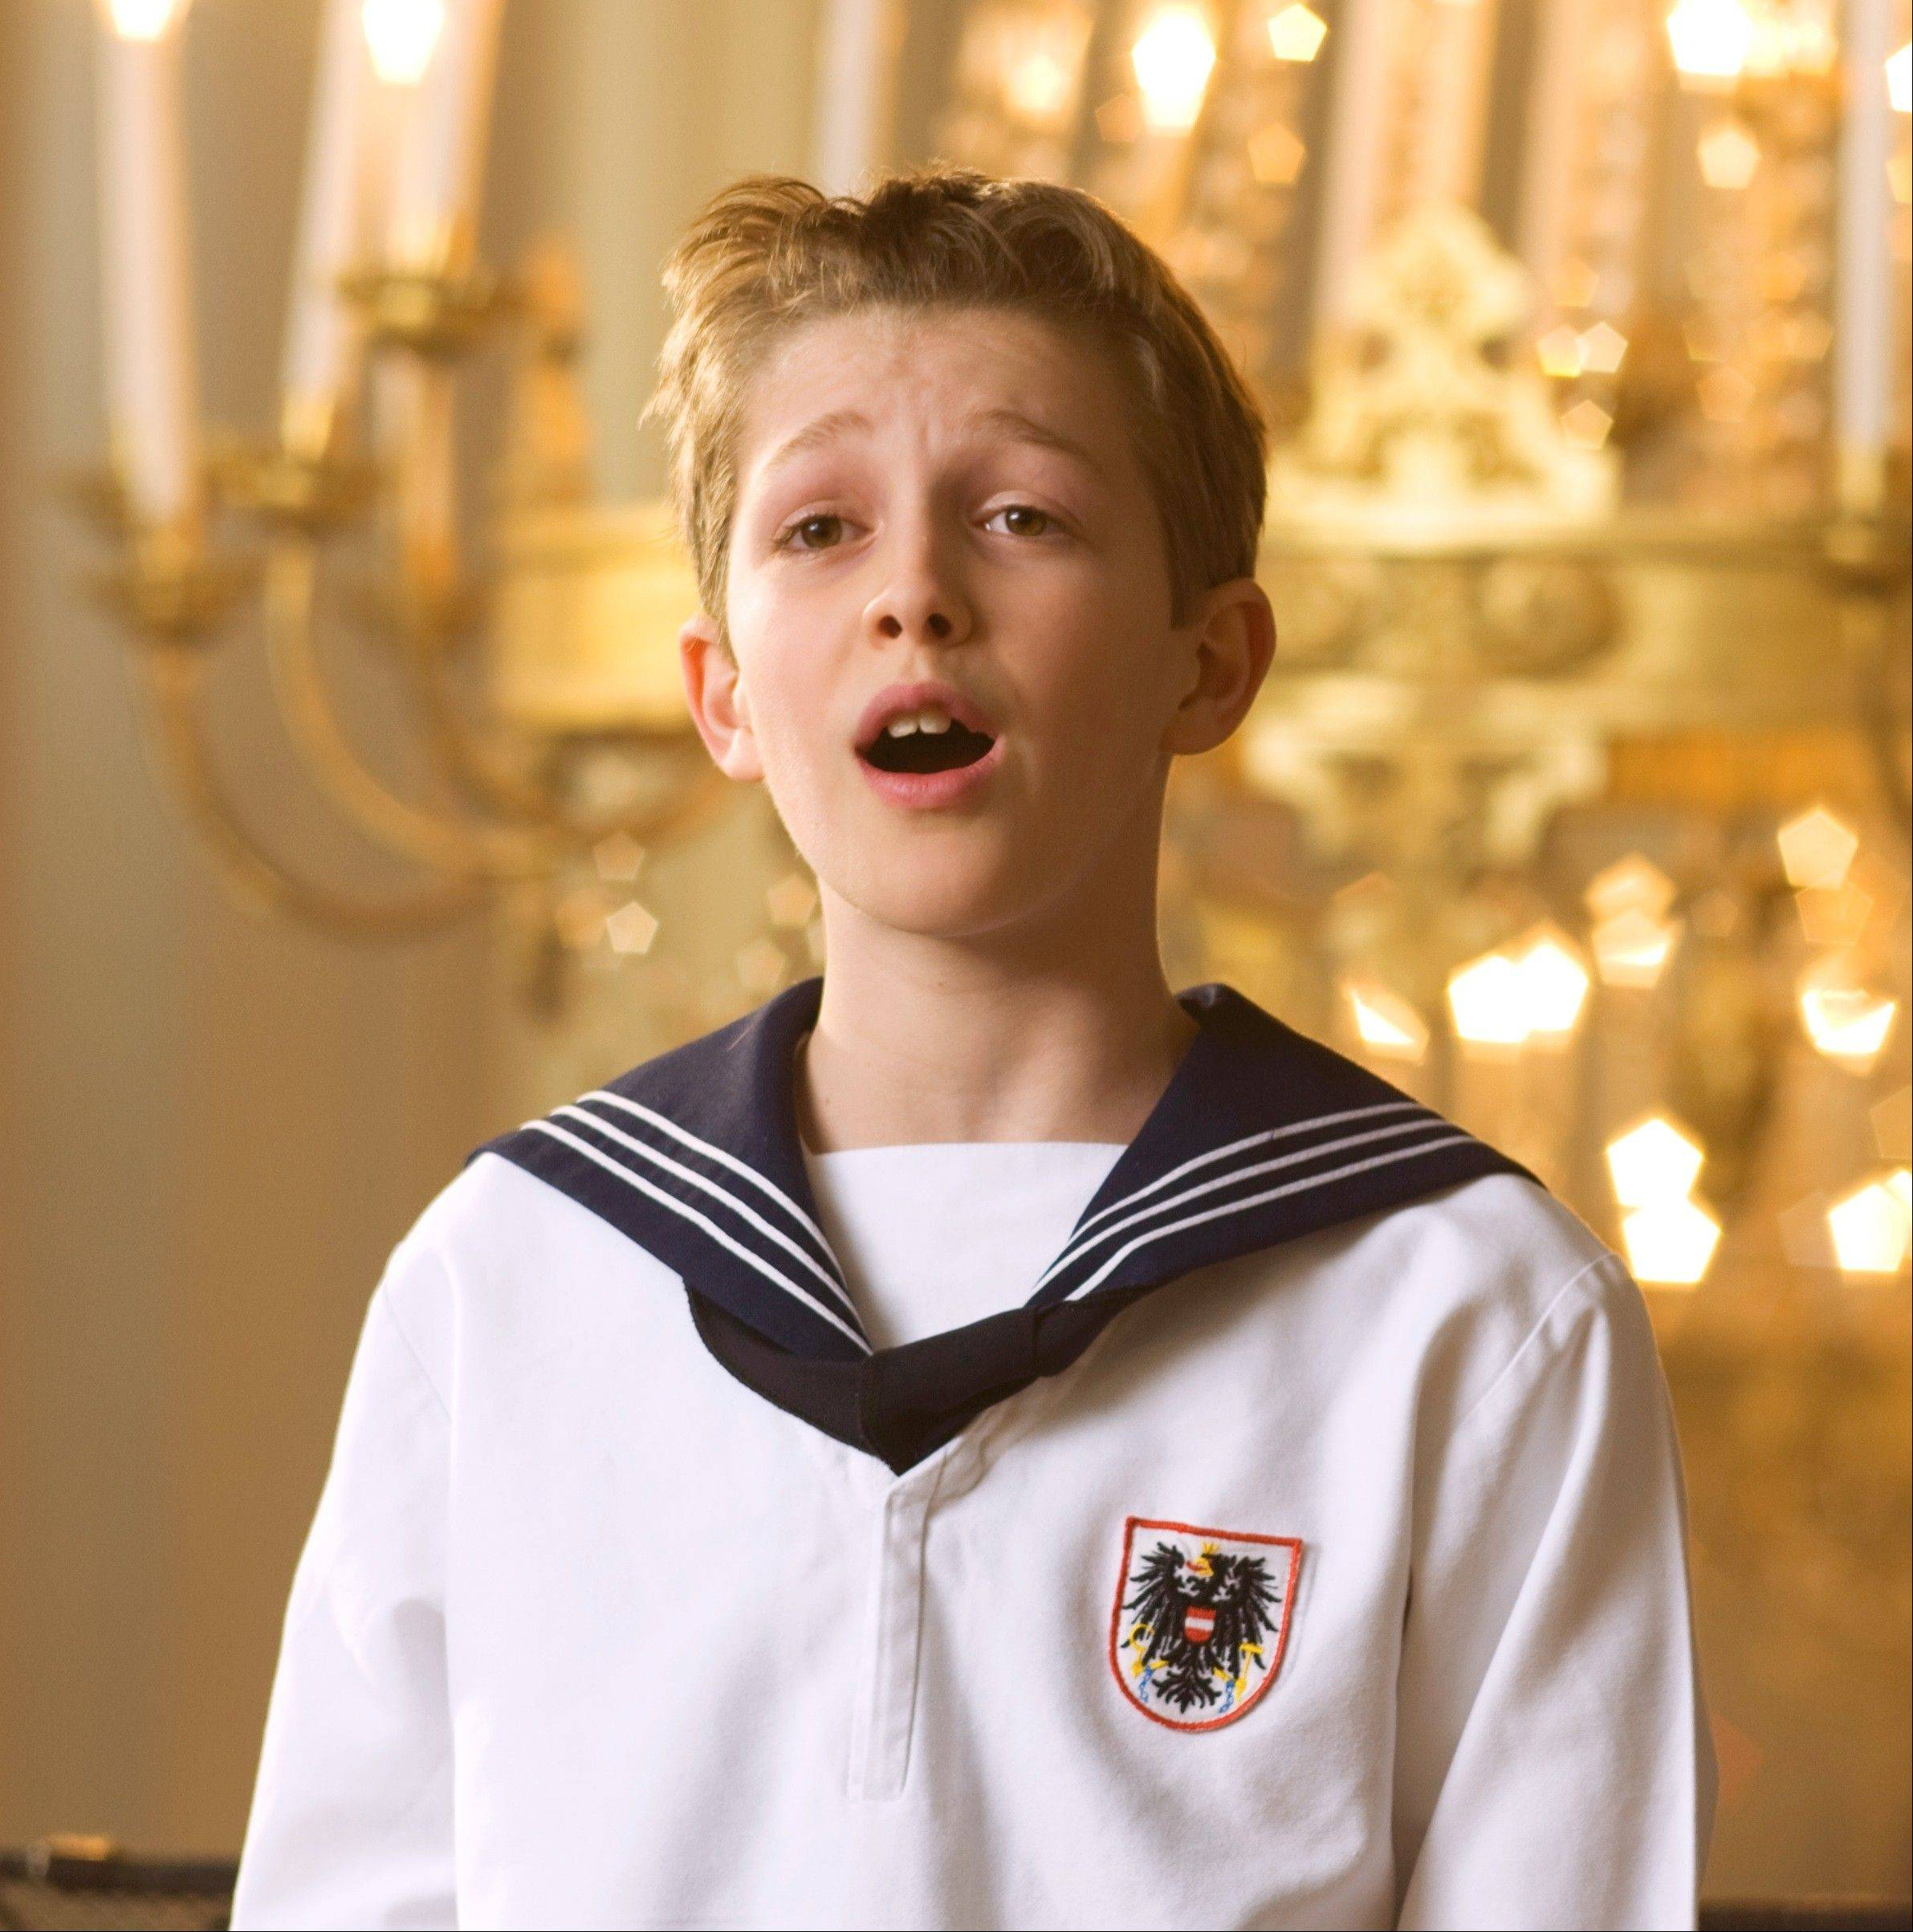 The Vienna Boys Choir performs at North Central College's Wentz Concert Hall in Naperville on Sunday, March 17.